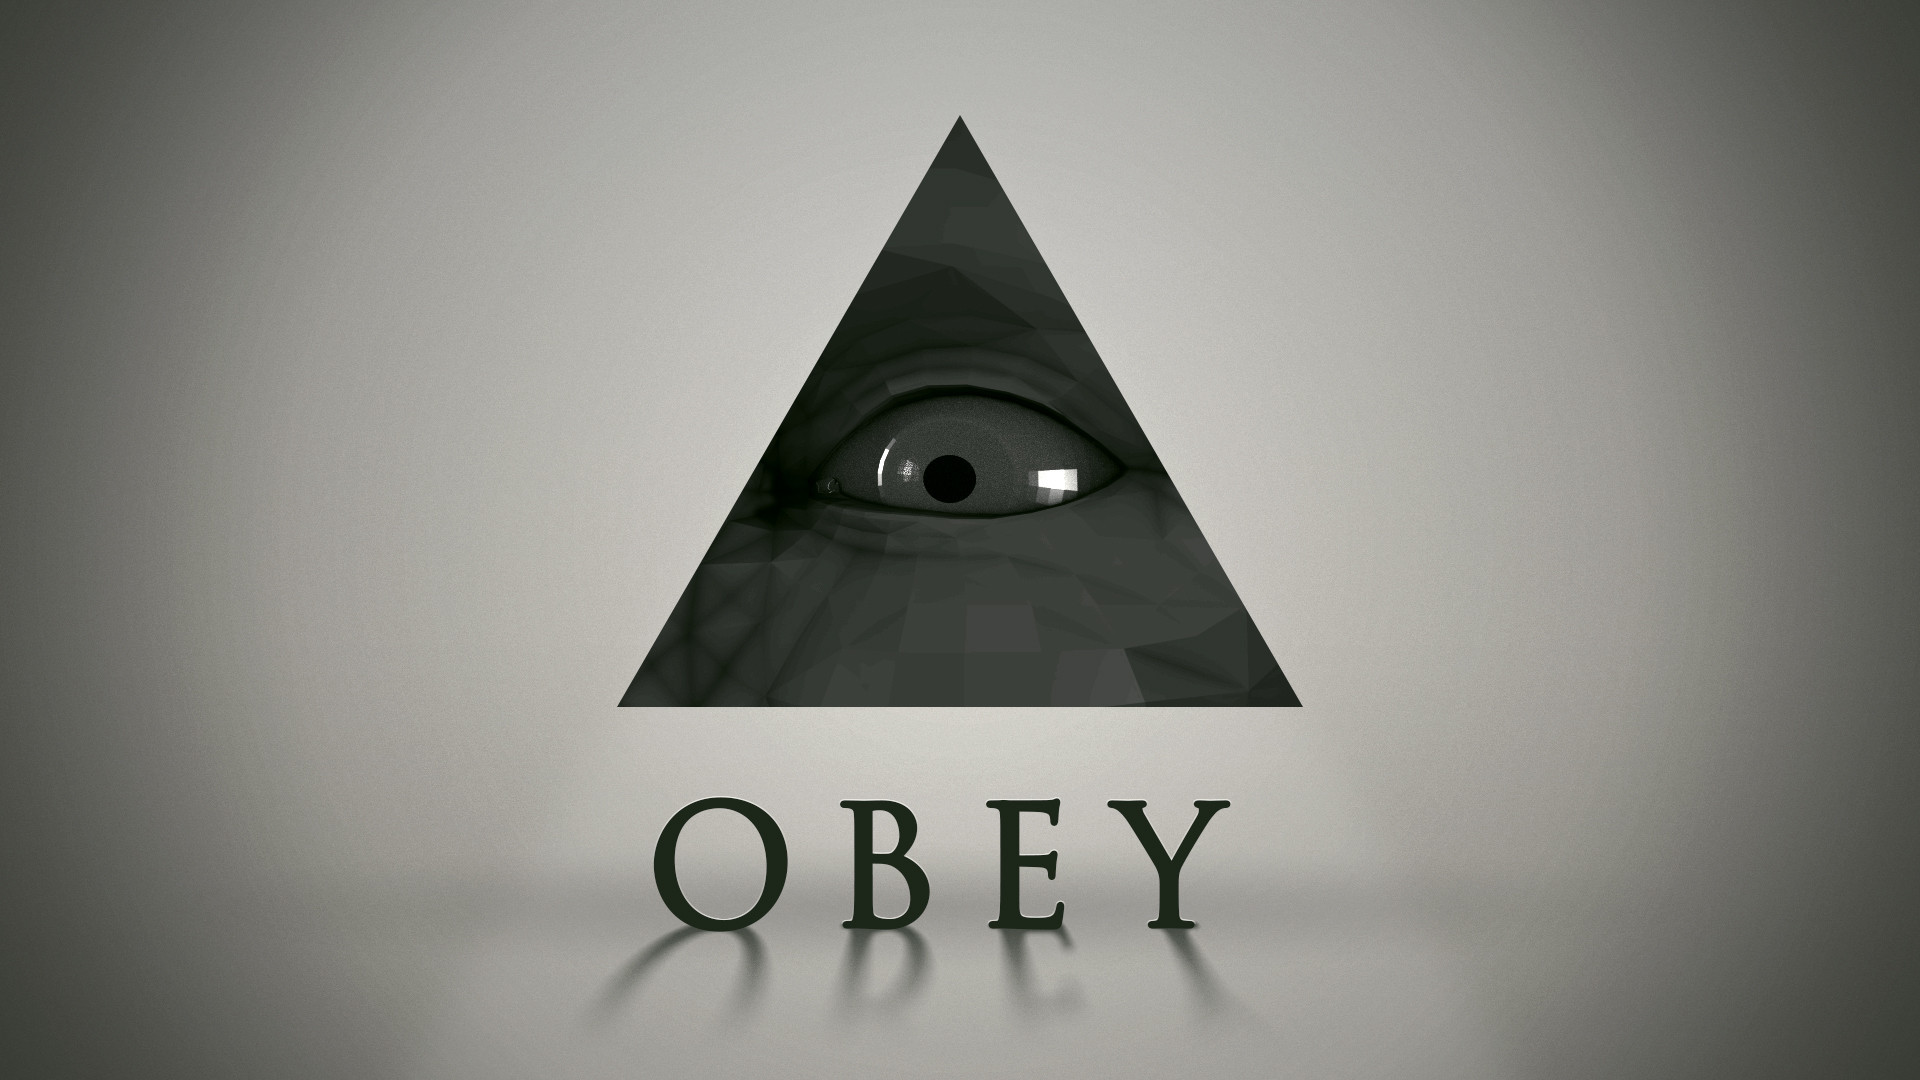 New Illuminati Wallpapers High Definition on your desktop or gadget. High  quality wallpaper in your click.